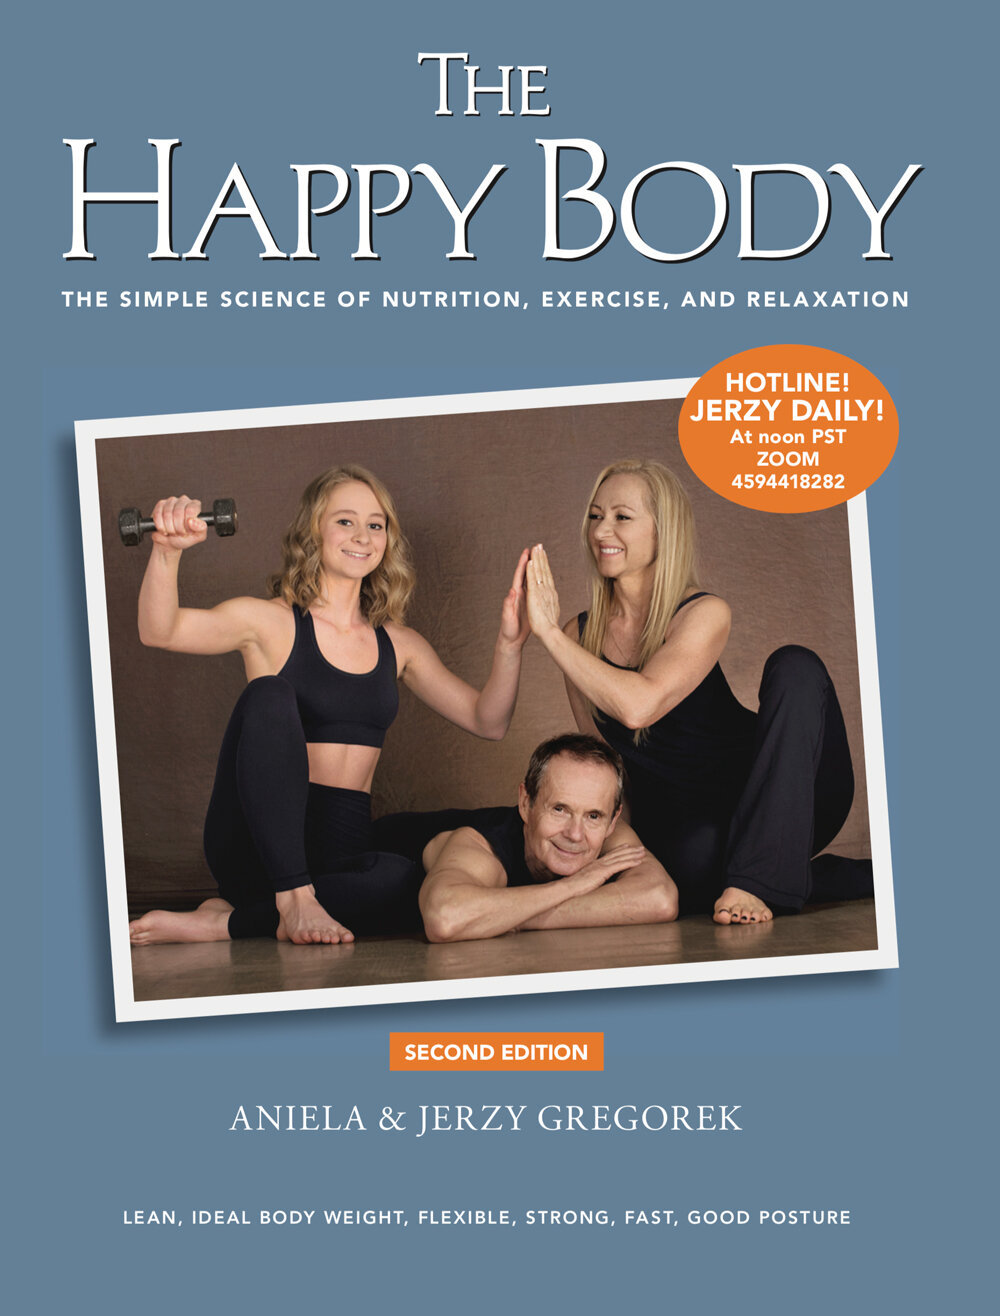 The-Happy-Body-Book-Cover-Second-Edition-2020.jpg